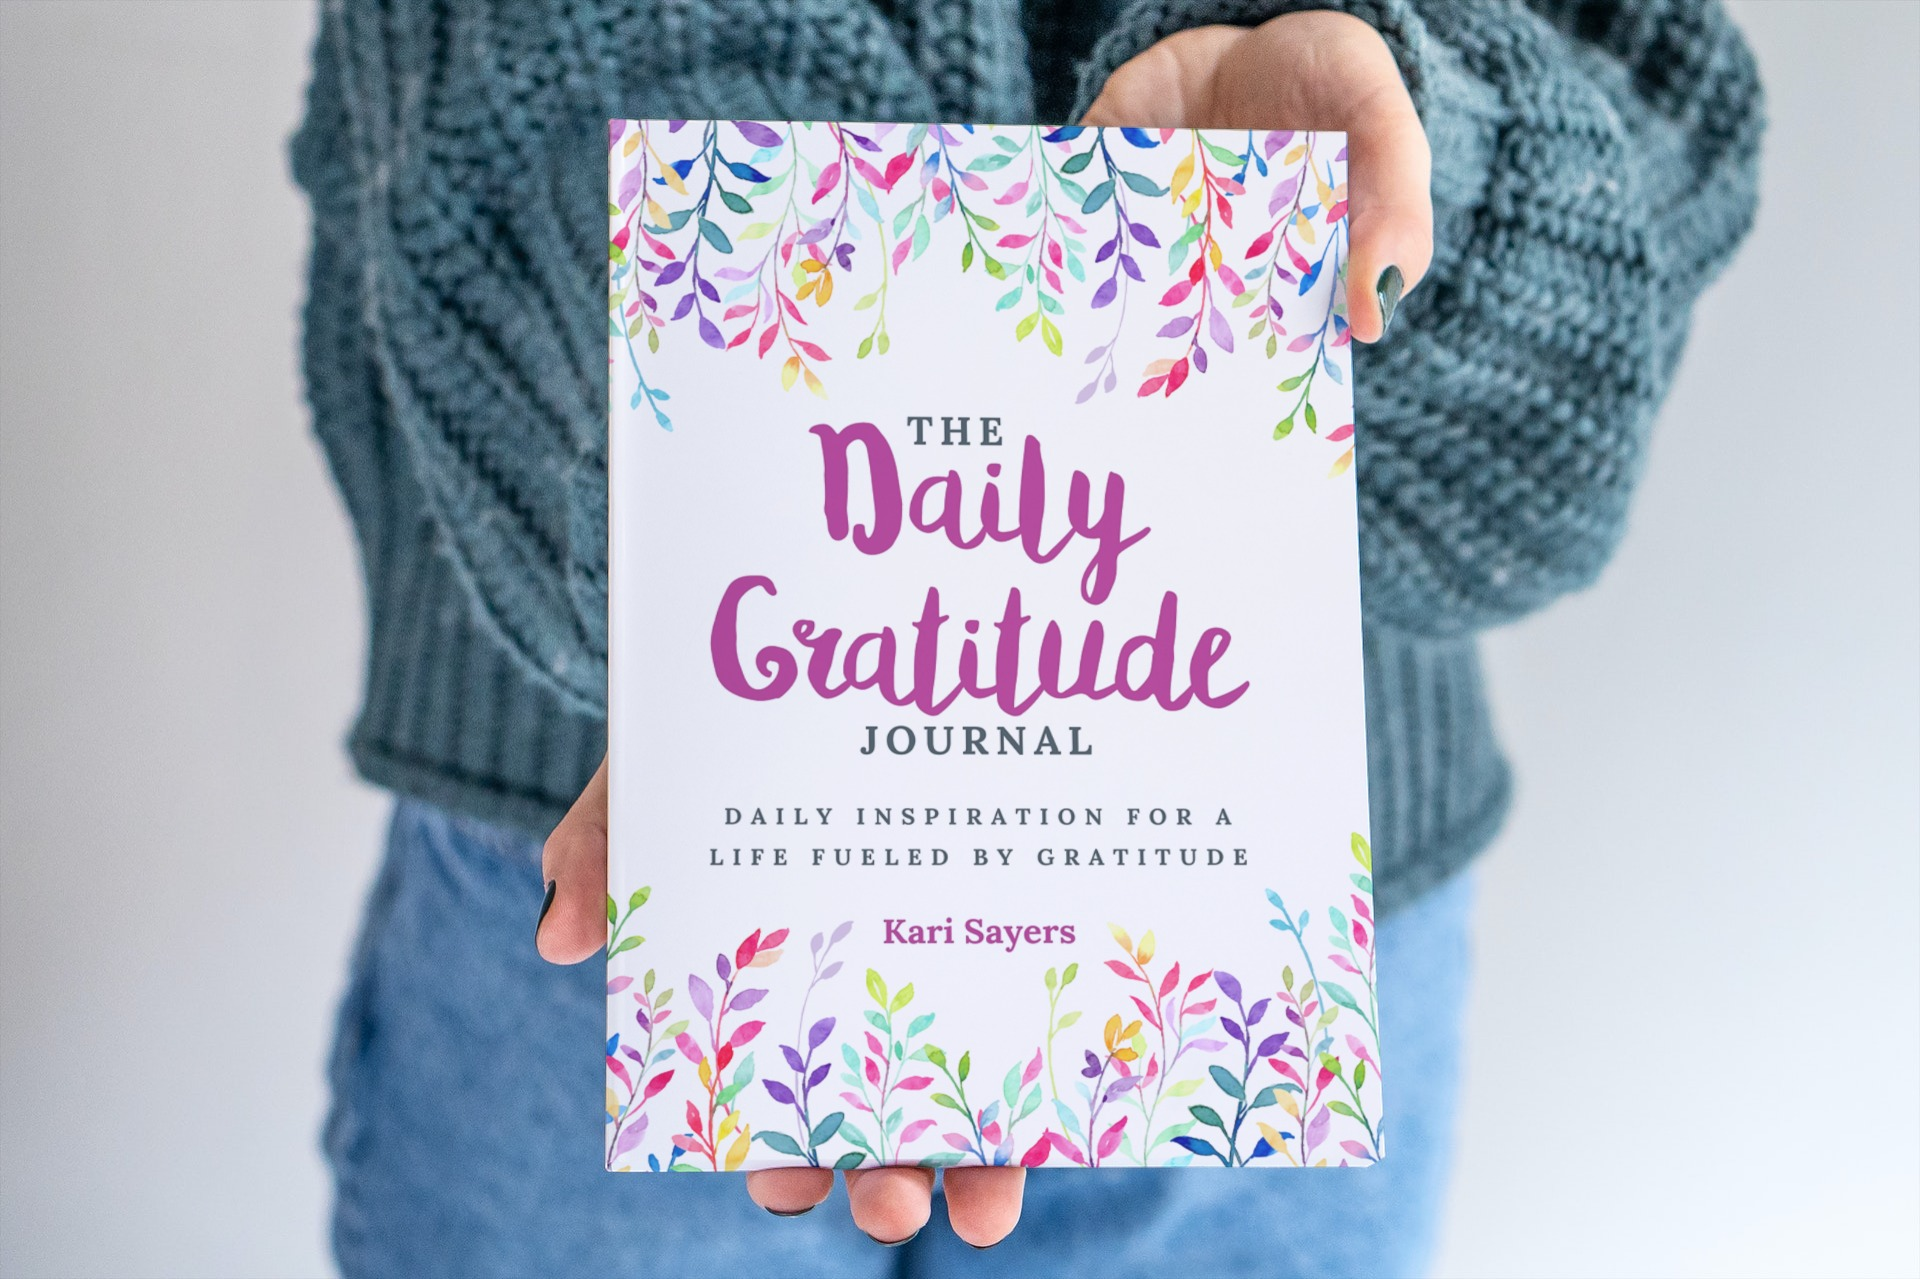 The Daily Gratitude Journal